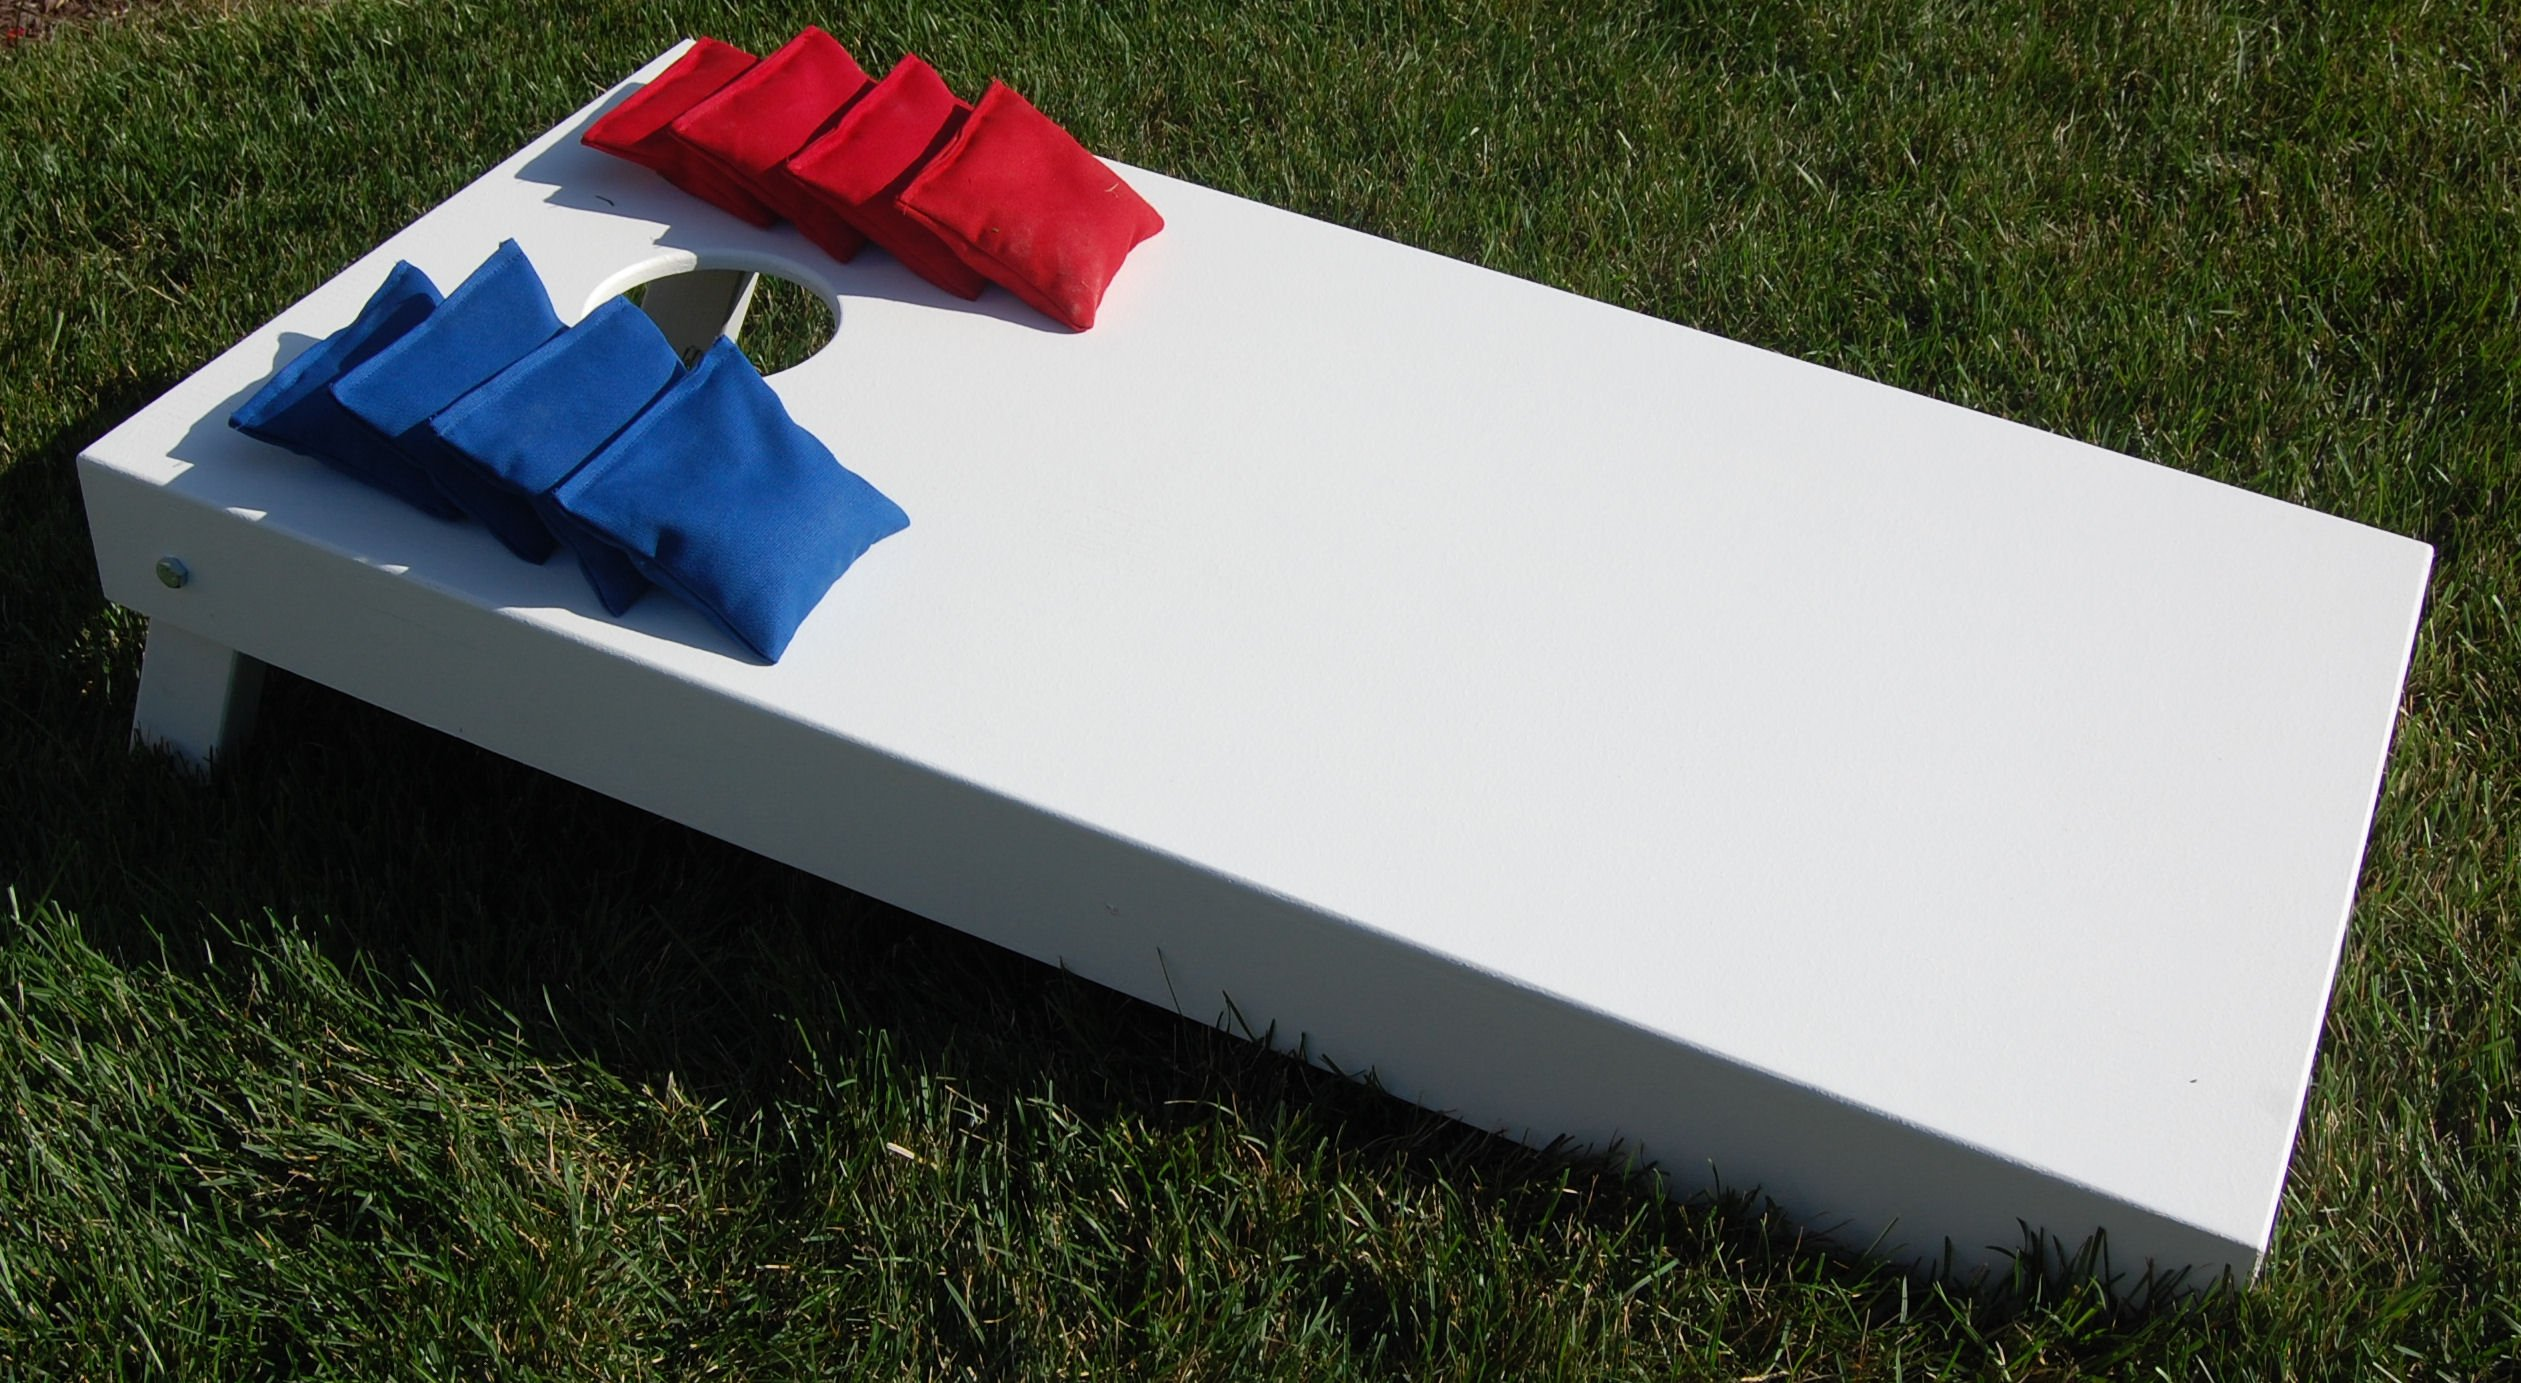 White 4x2' Regulation Cornhole Set (Bags Included) from SC Cornhole Games (White)